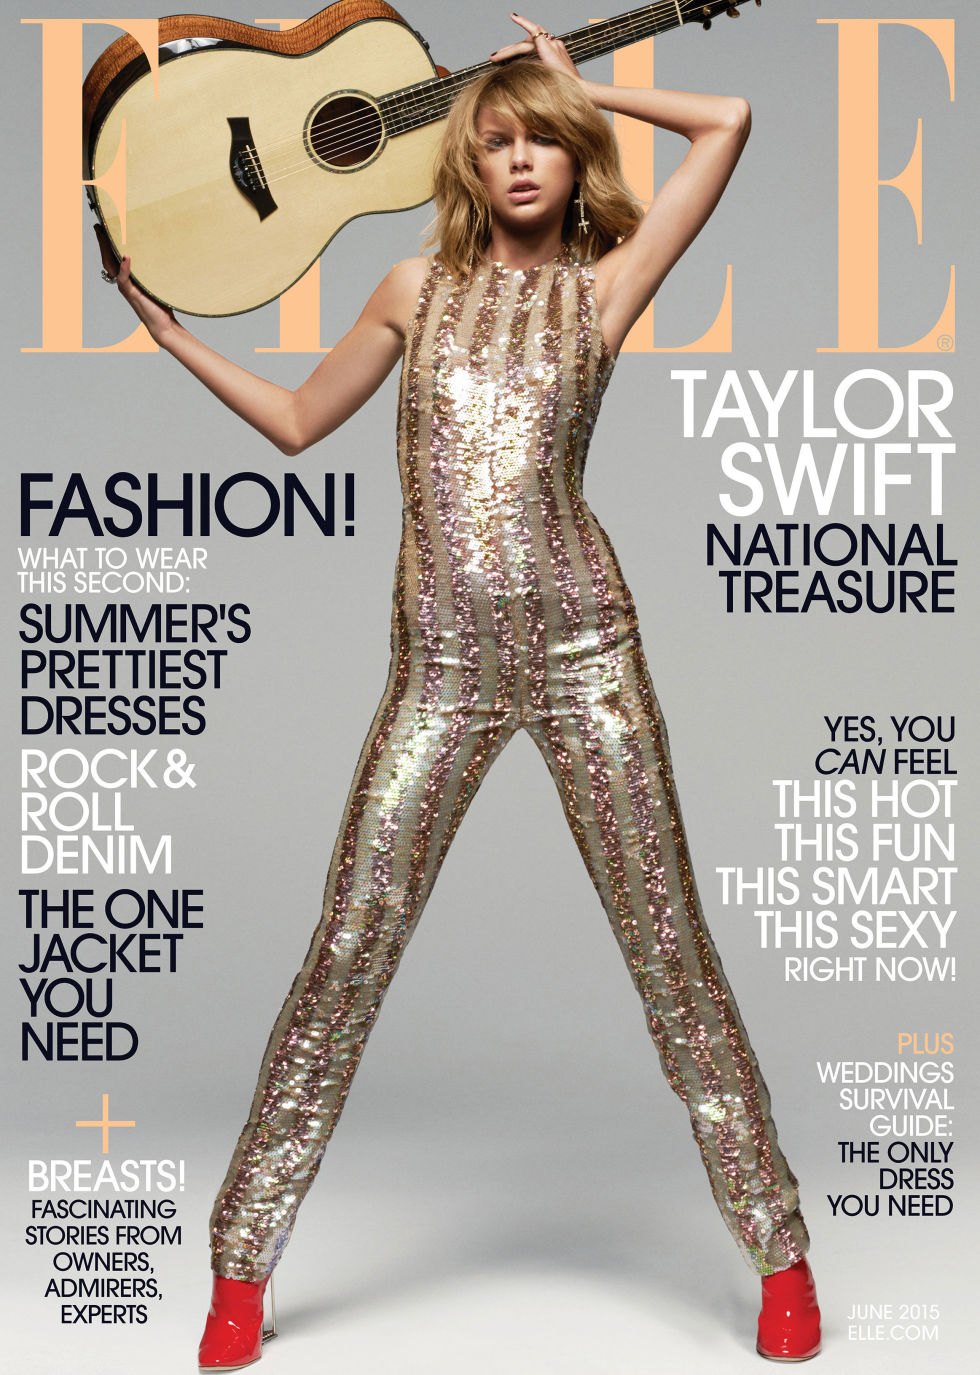 Elle Magazine France February March: Taylor Swift Is Rockstar Chic And Talks About Finding